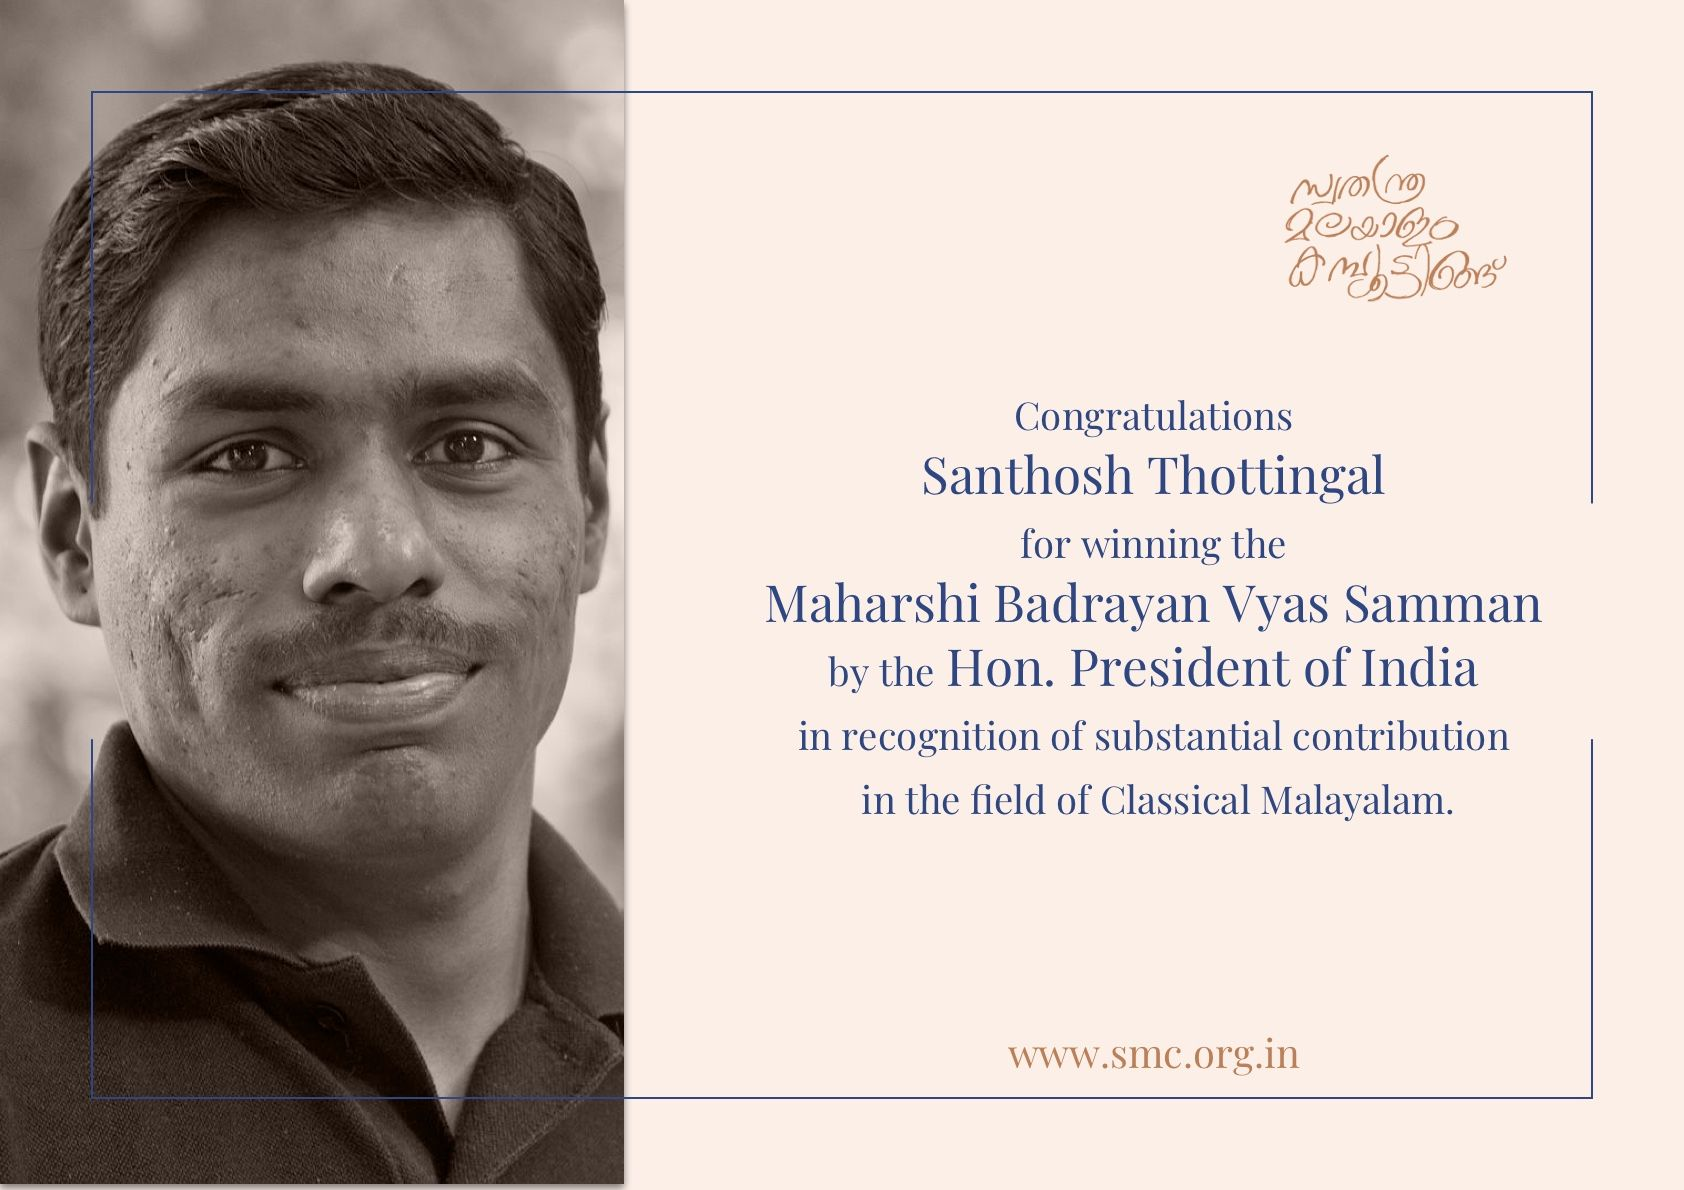 Santhosh Thottingal wins the President's Maharshi Badrayan Vyas Samman for 2019